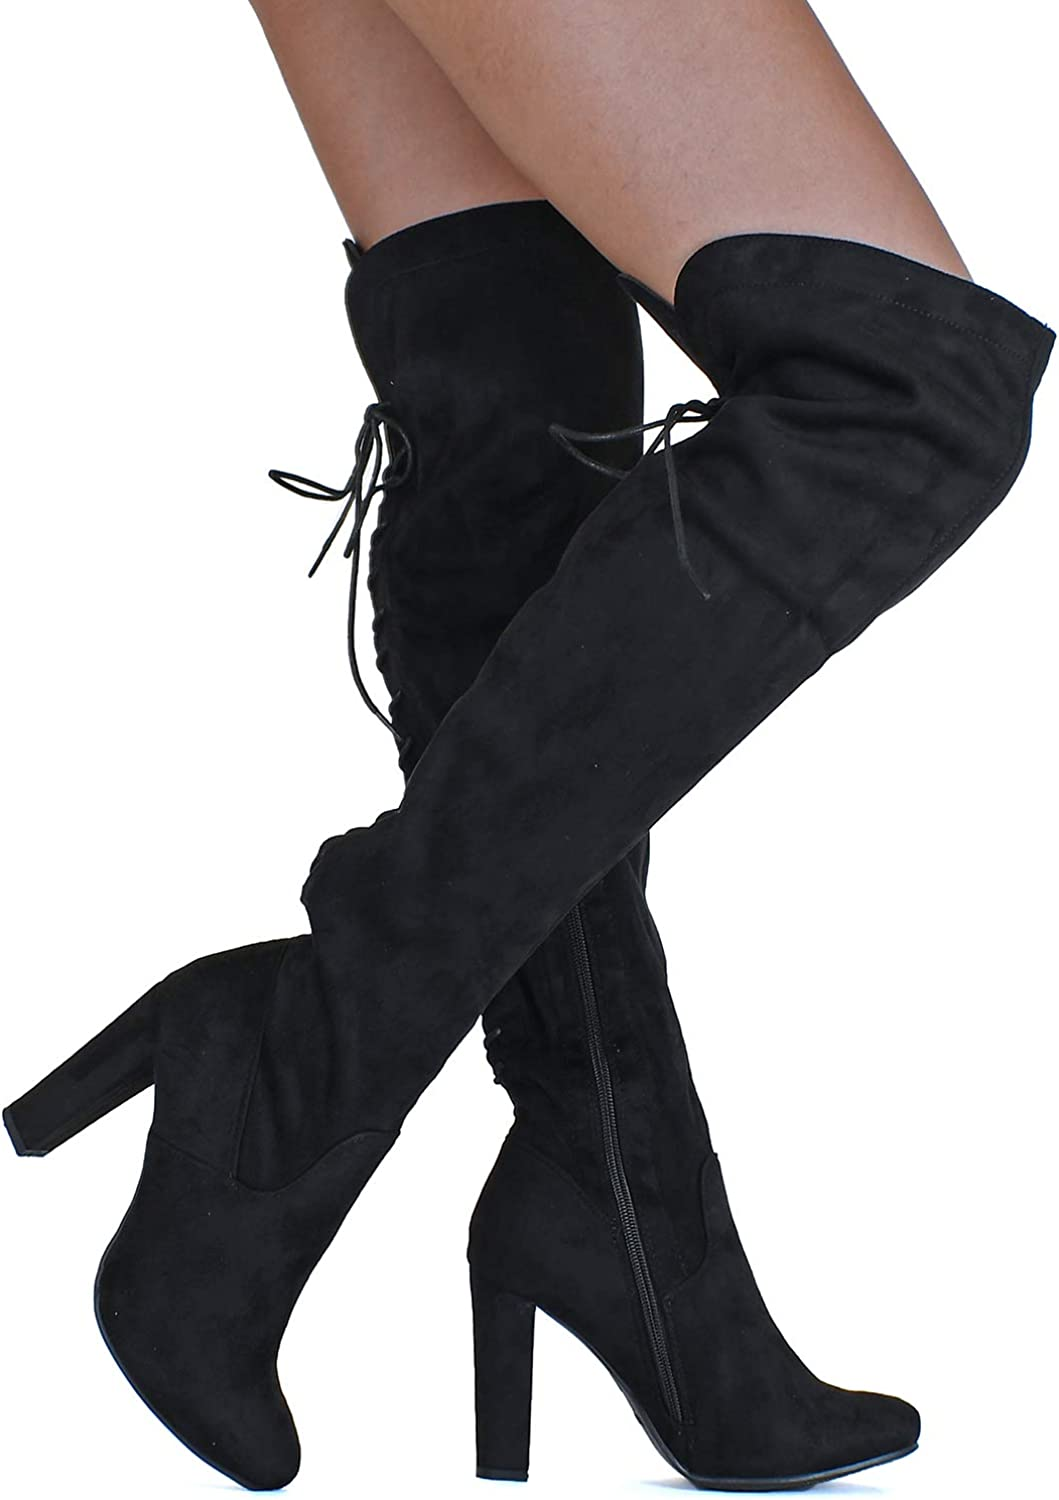 Details about  /Womens Chunky Low Heel Stretch Over The Knee Thigh High Boots Square Toe Shoes L